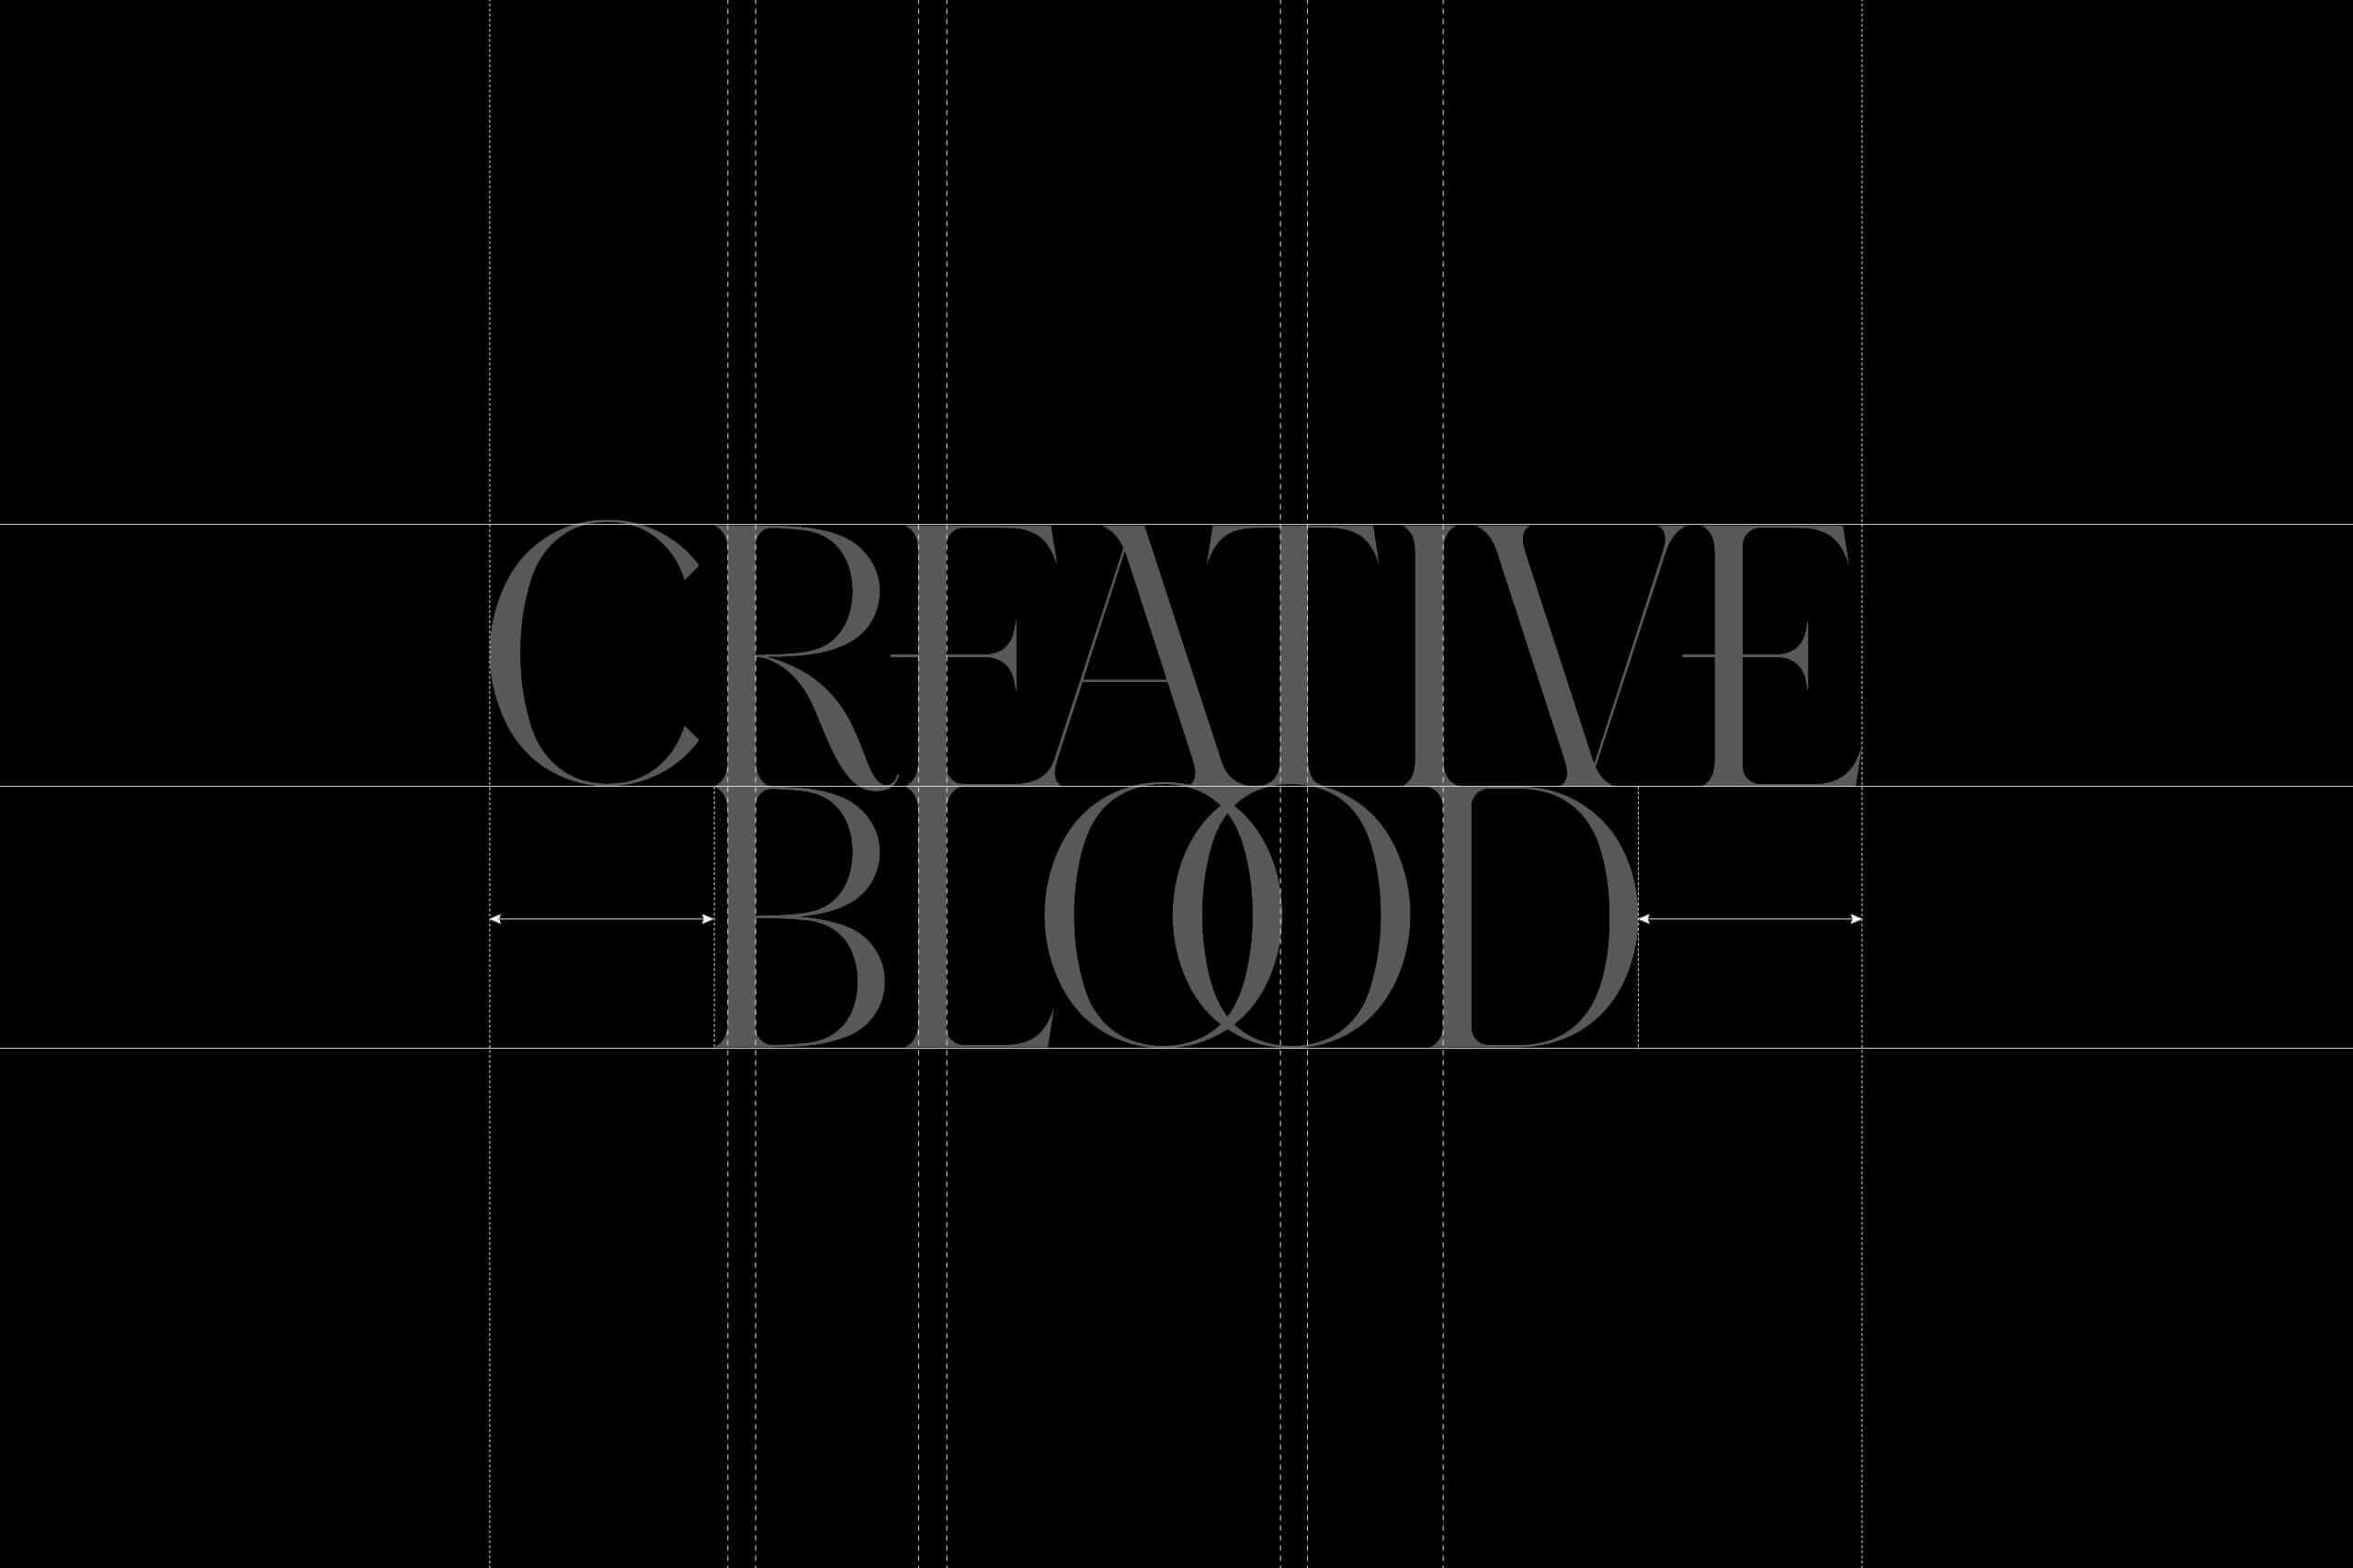 AI_Creative-Blood_LR_6-compressor